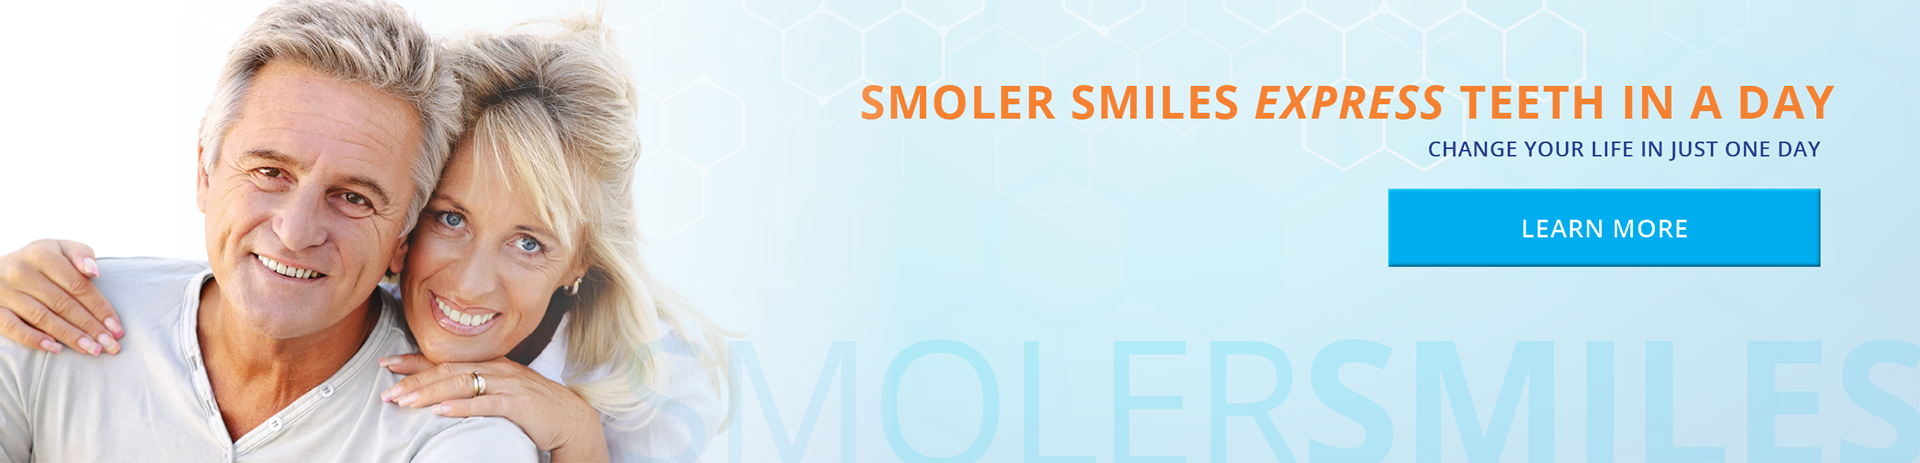 Smoler Smiles Express Teeth In A Day